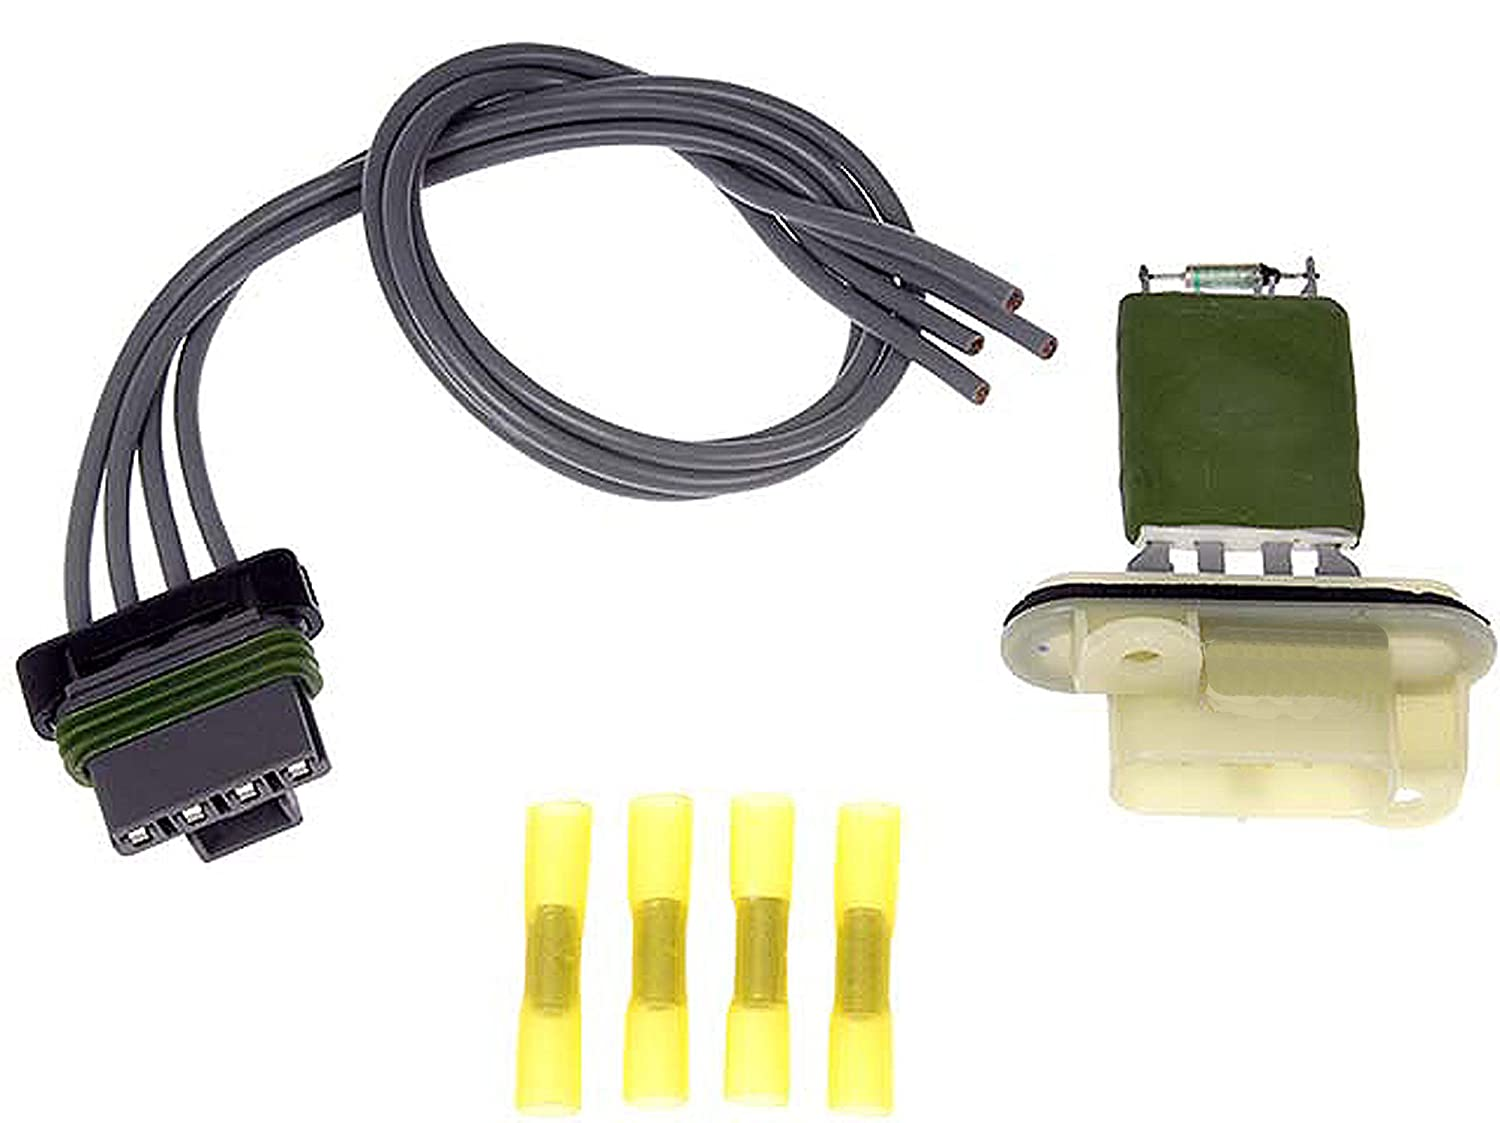 71W4YZU3JdL._SL1500_ amazon com apdty 084545 blower motor switch resistor kit w blower motor resistor wiring harness at bakdesigns.co